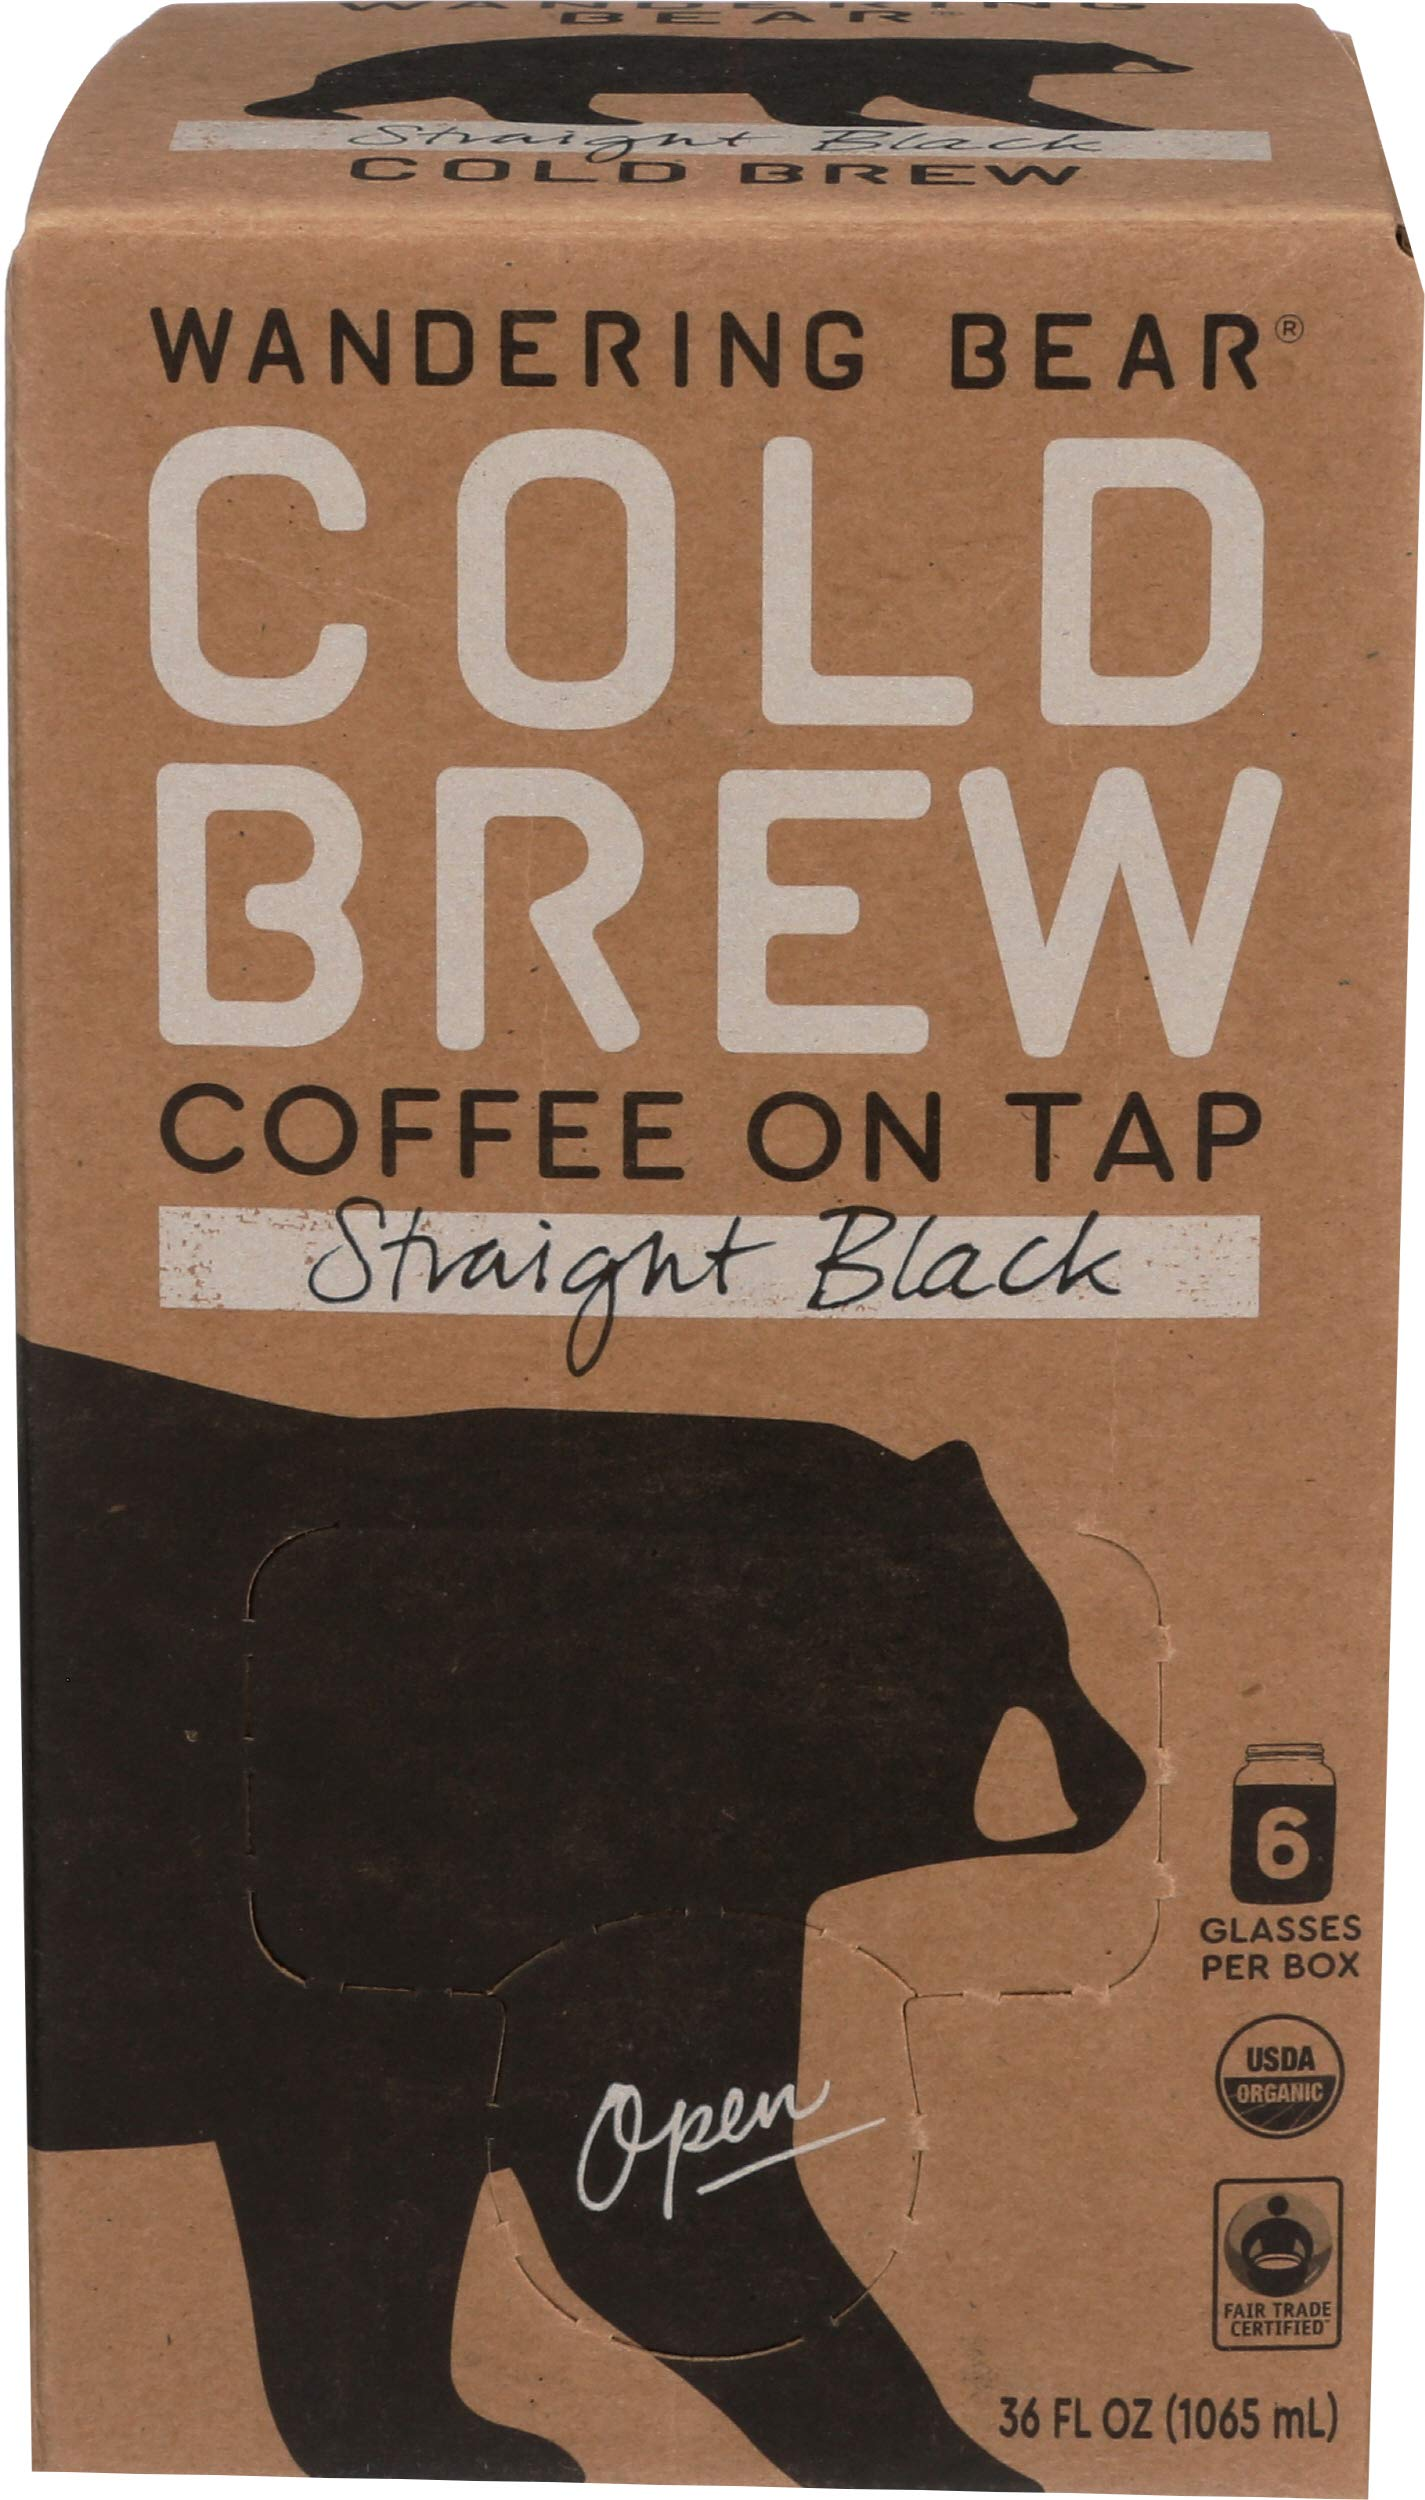 Wandering Bear Organic Cold Brew Coffee On Tap, Straight Black, No Sugar, Always Fresh and Ready to Drink, Not a Concentrate, 36 fl oz, Trial Size